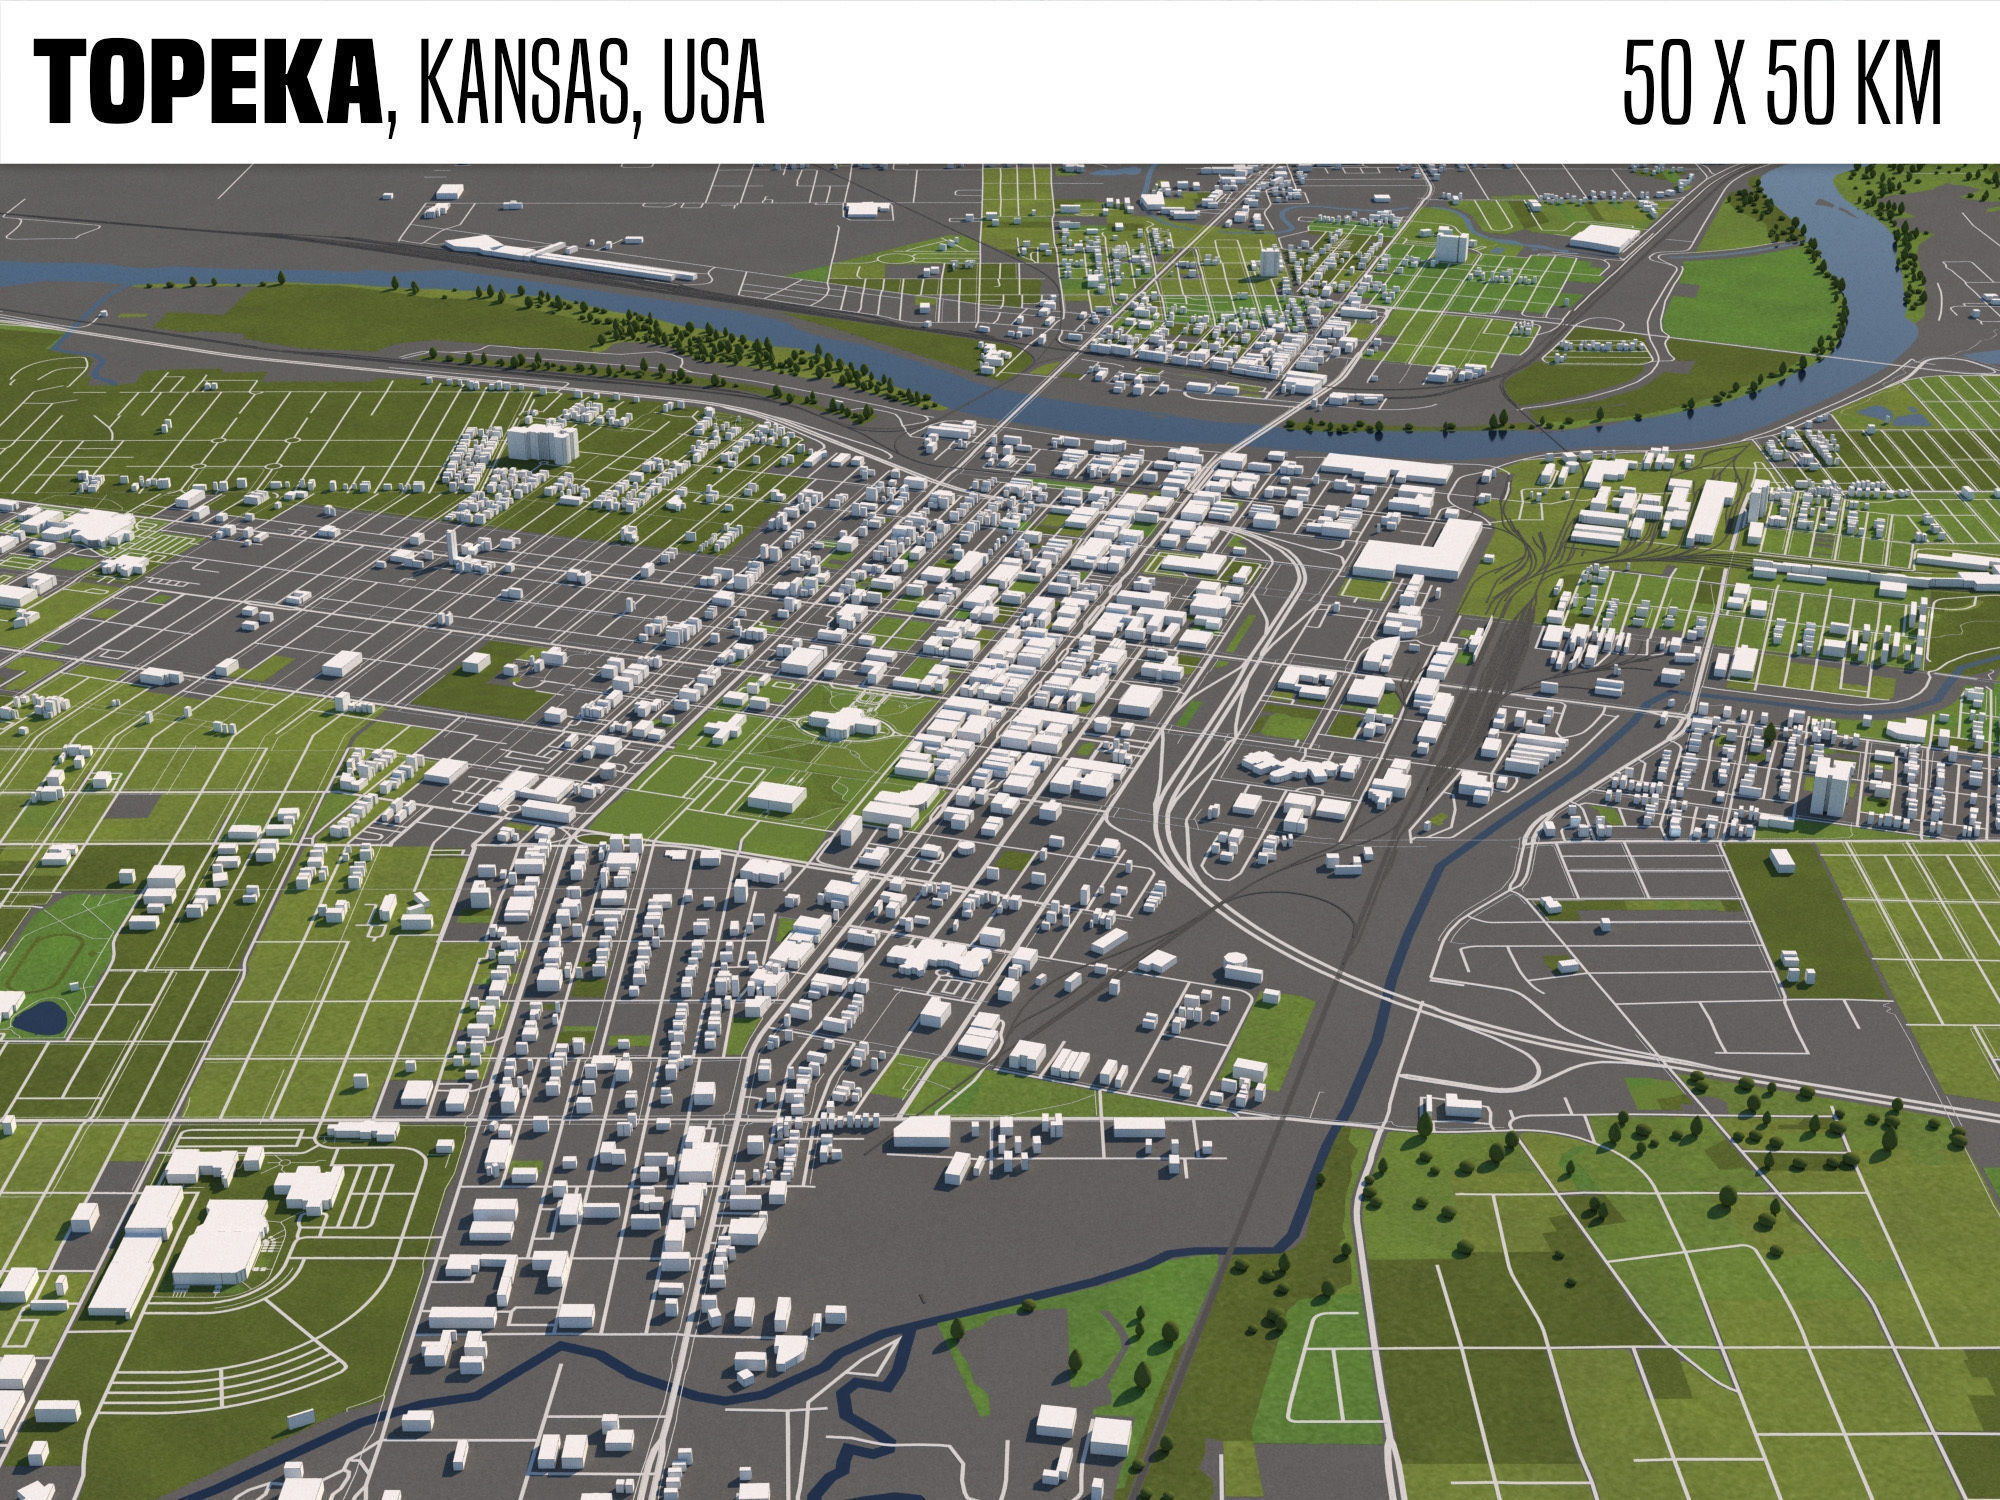 Topeka Kansas USA 50x50km